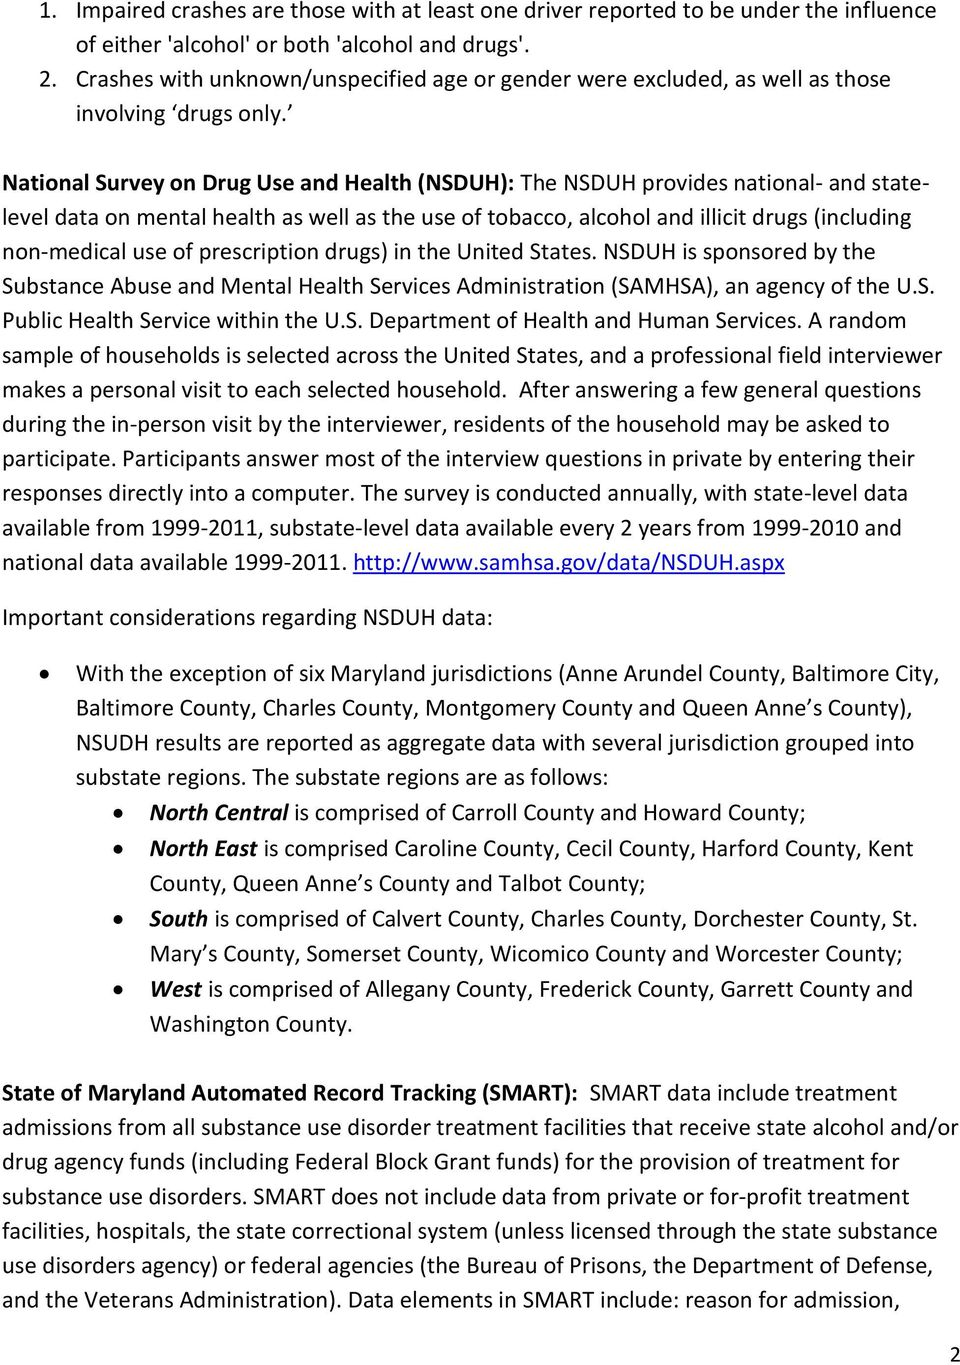 National Survey on Drug Use and Health (NSDUH): The NSDUH provides national- and statelevel data on mental health as well as the use of tobacco, alcohol and illicit drugs (including non-medical use